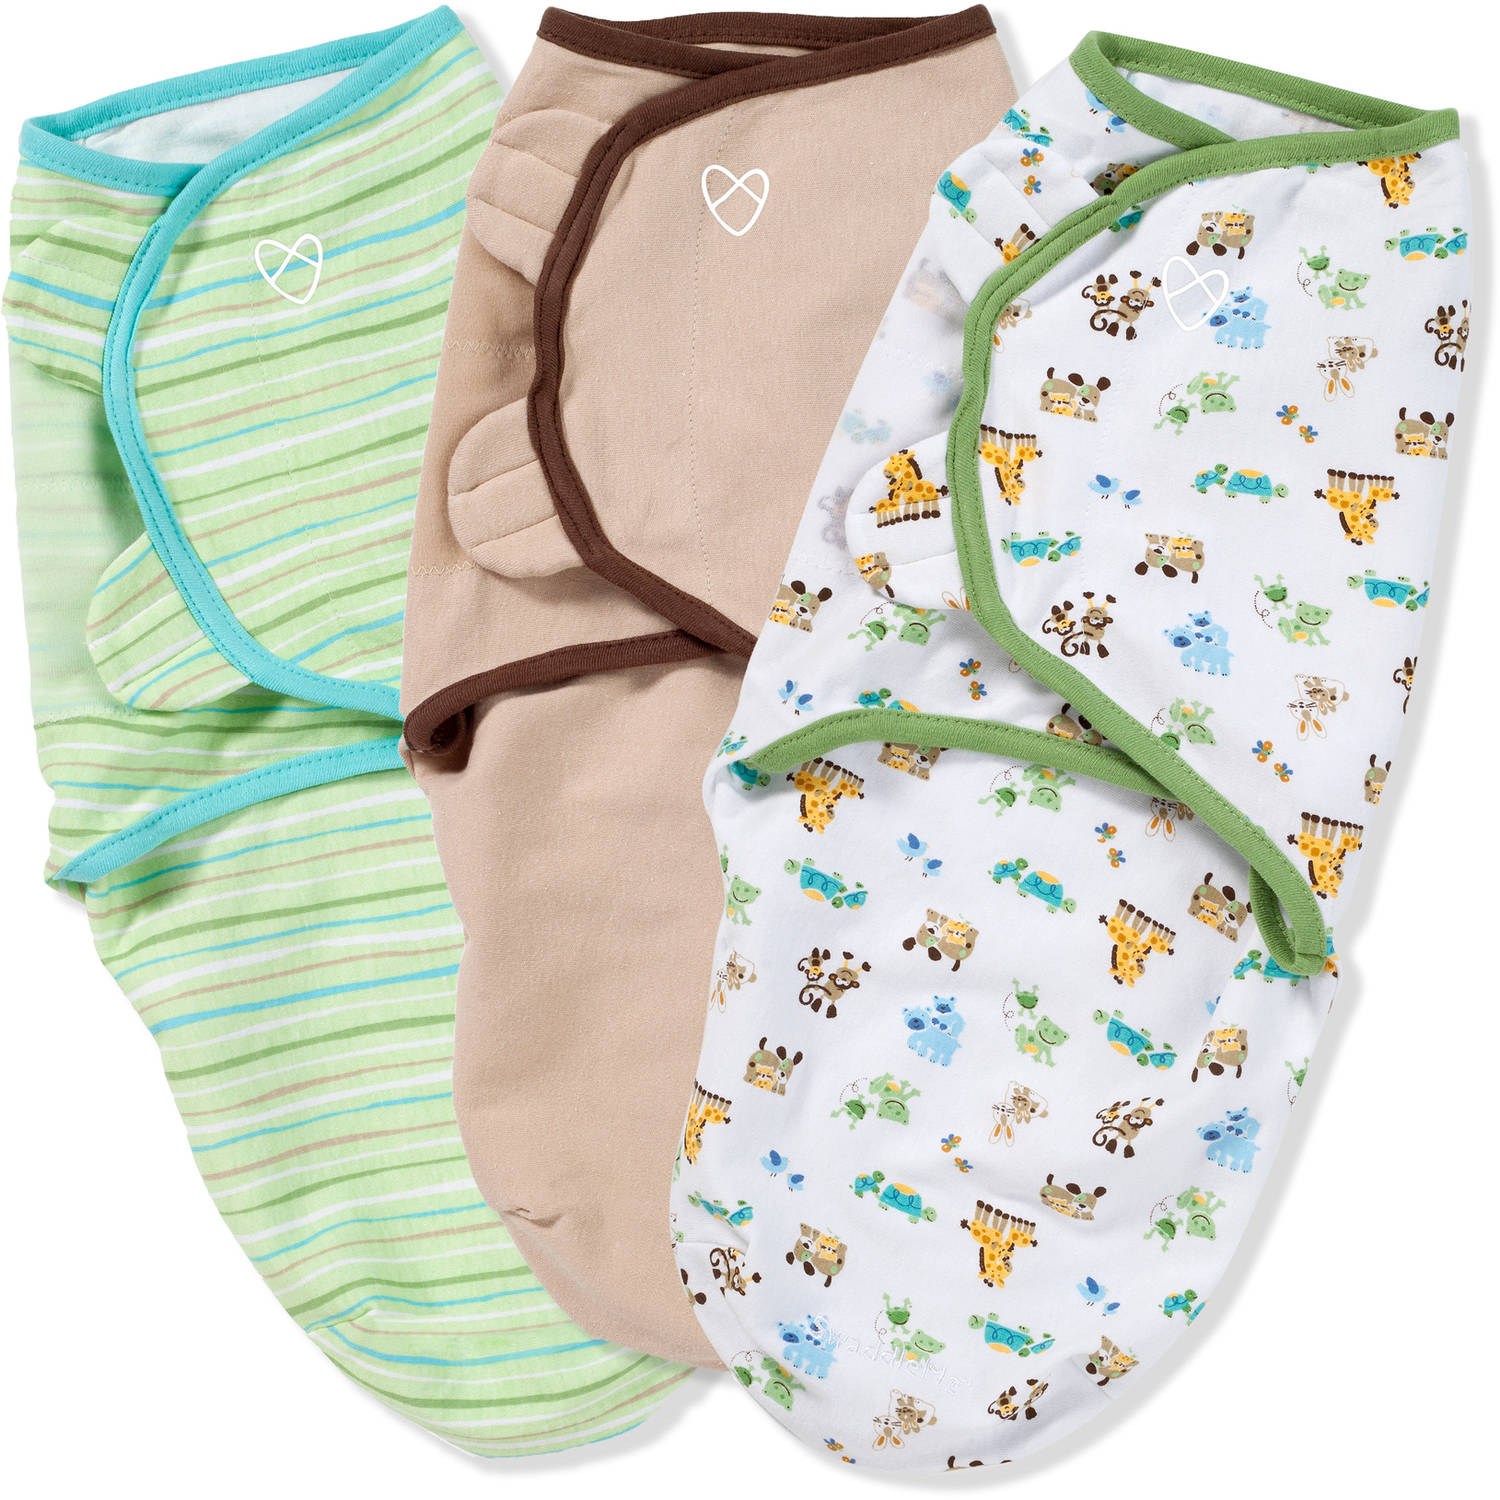 SwaddleMe Original Swaddle, 3-Pack, Mom & Baby, Small